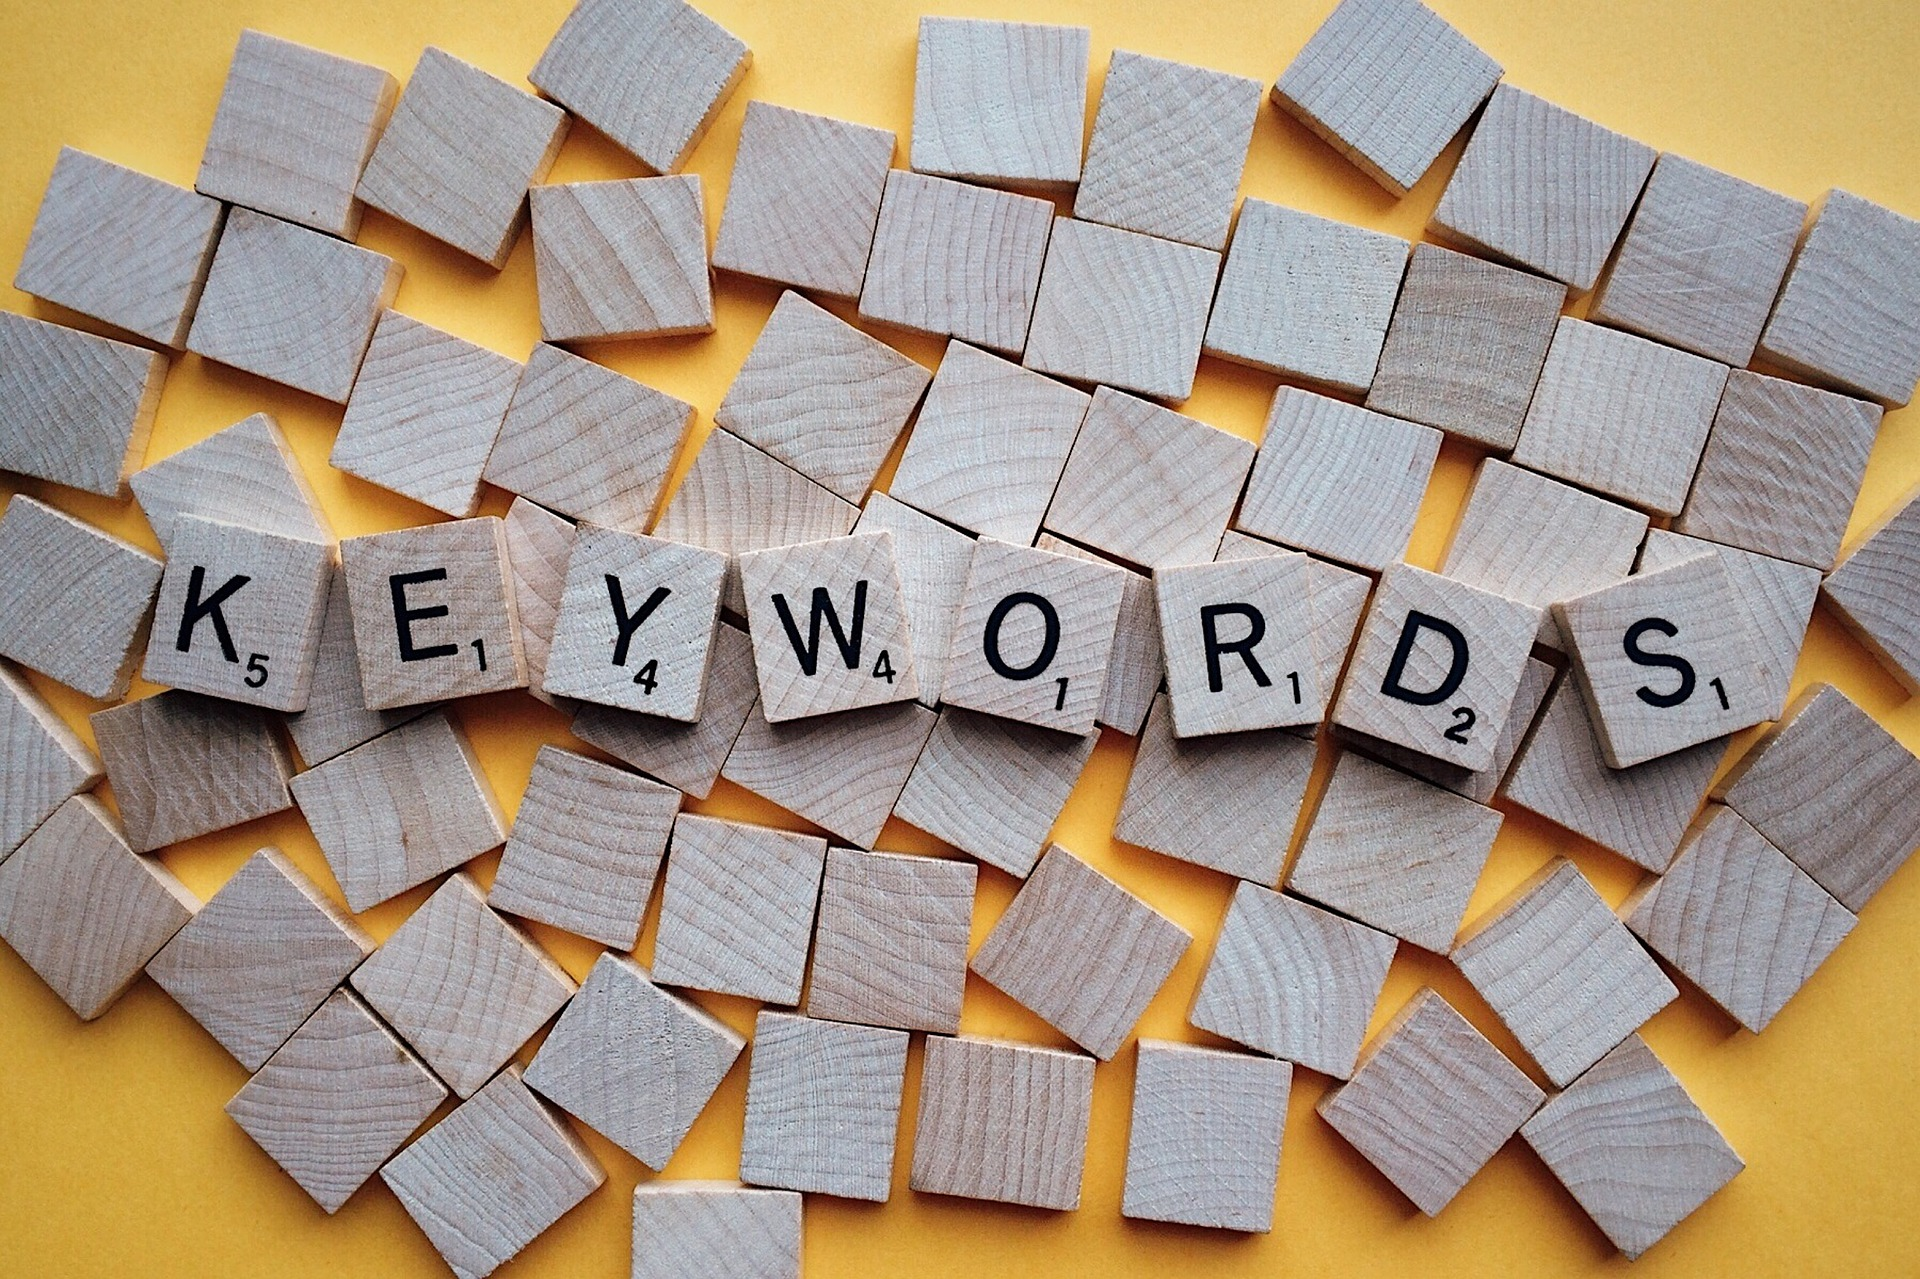 Have a keyword strategy